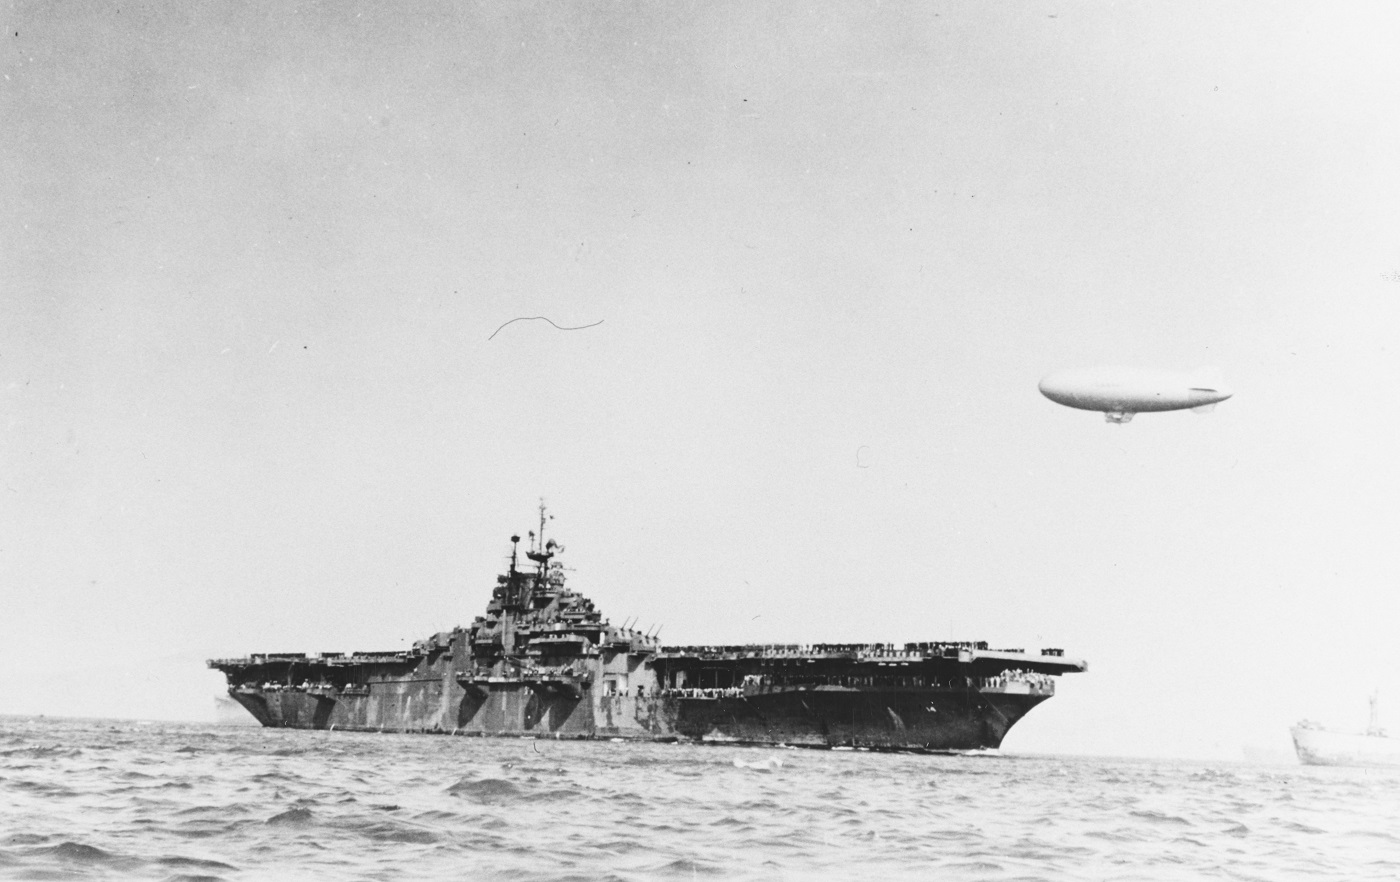 USS Ticonderoga (CV-14) San Francisco Bay, California, following the end of World War II, circa late 1945 or early 1946. A blimp is in the background. Courtesy of Donald M. McPherson, 1973 NH 77366